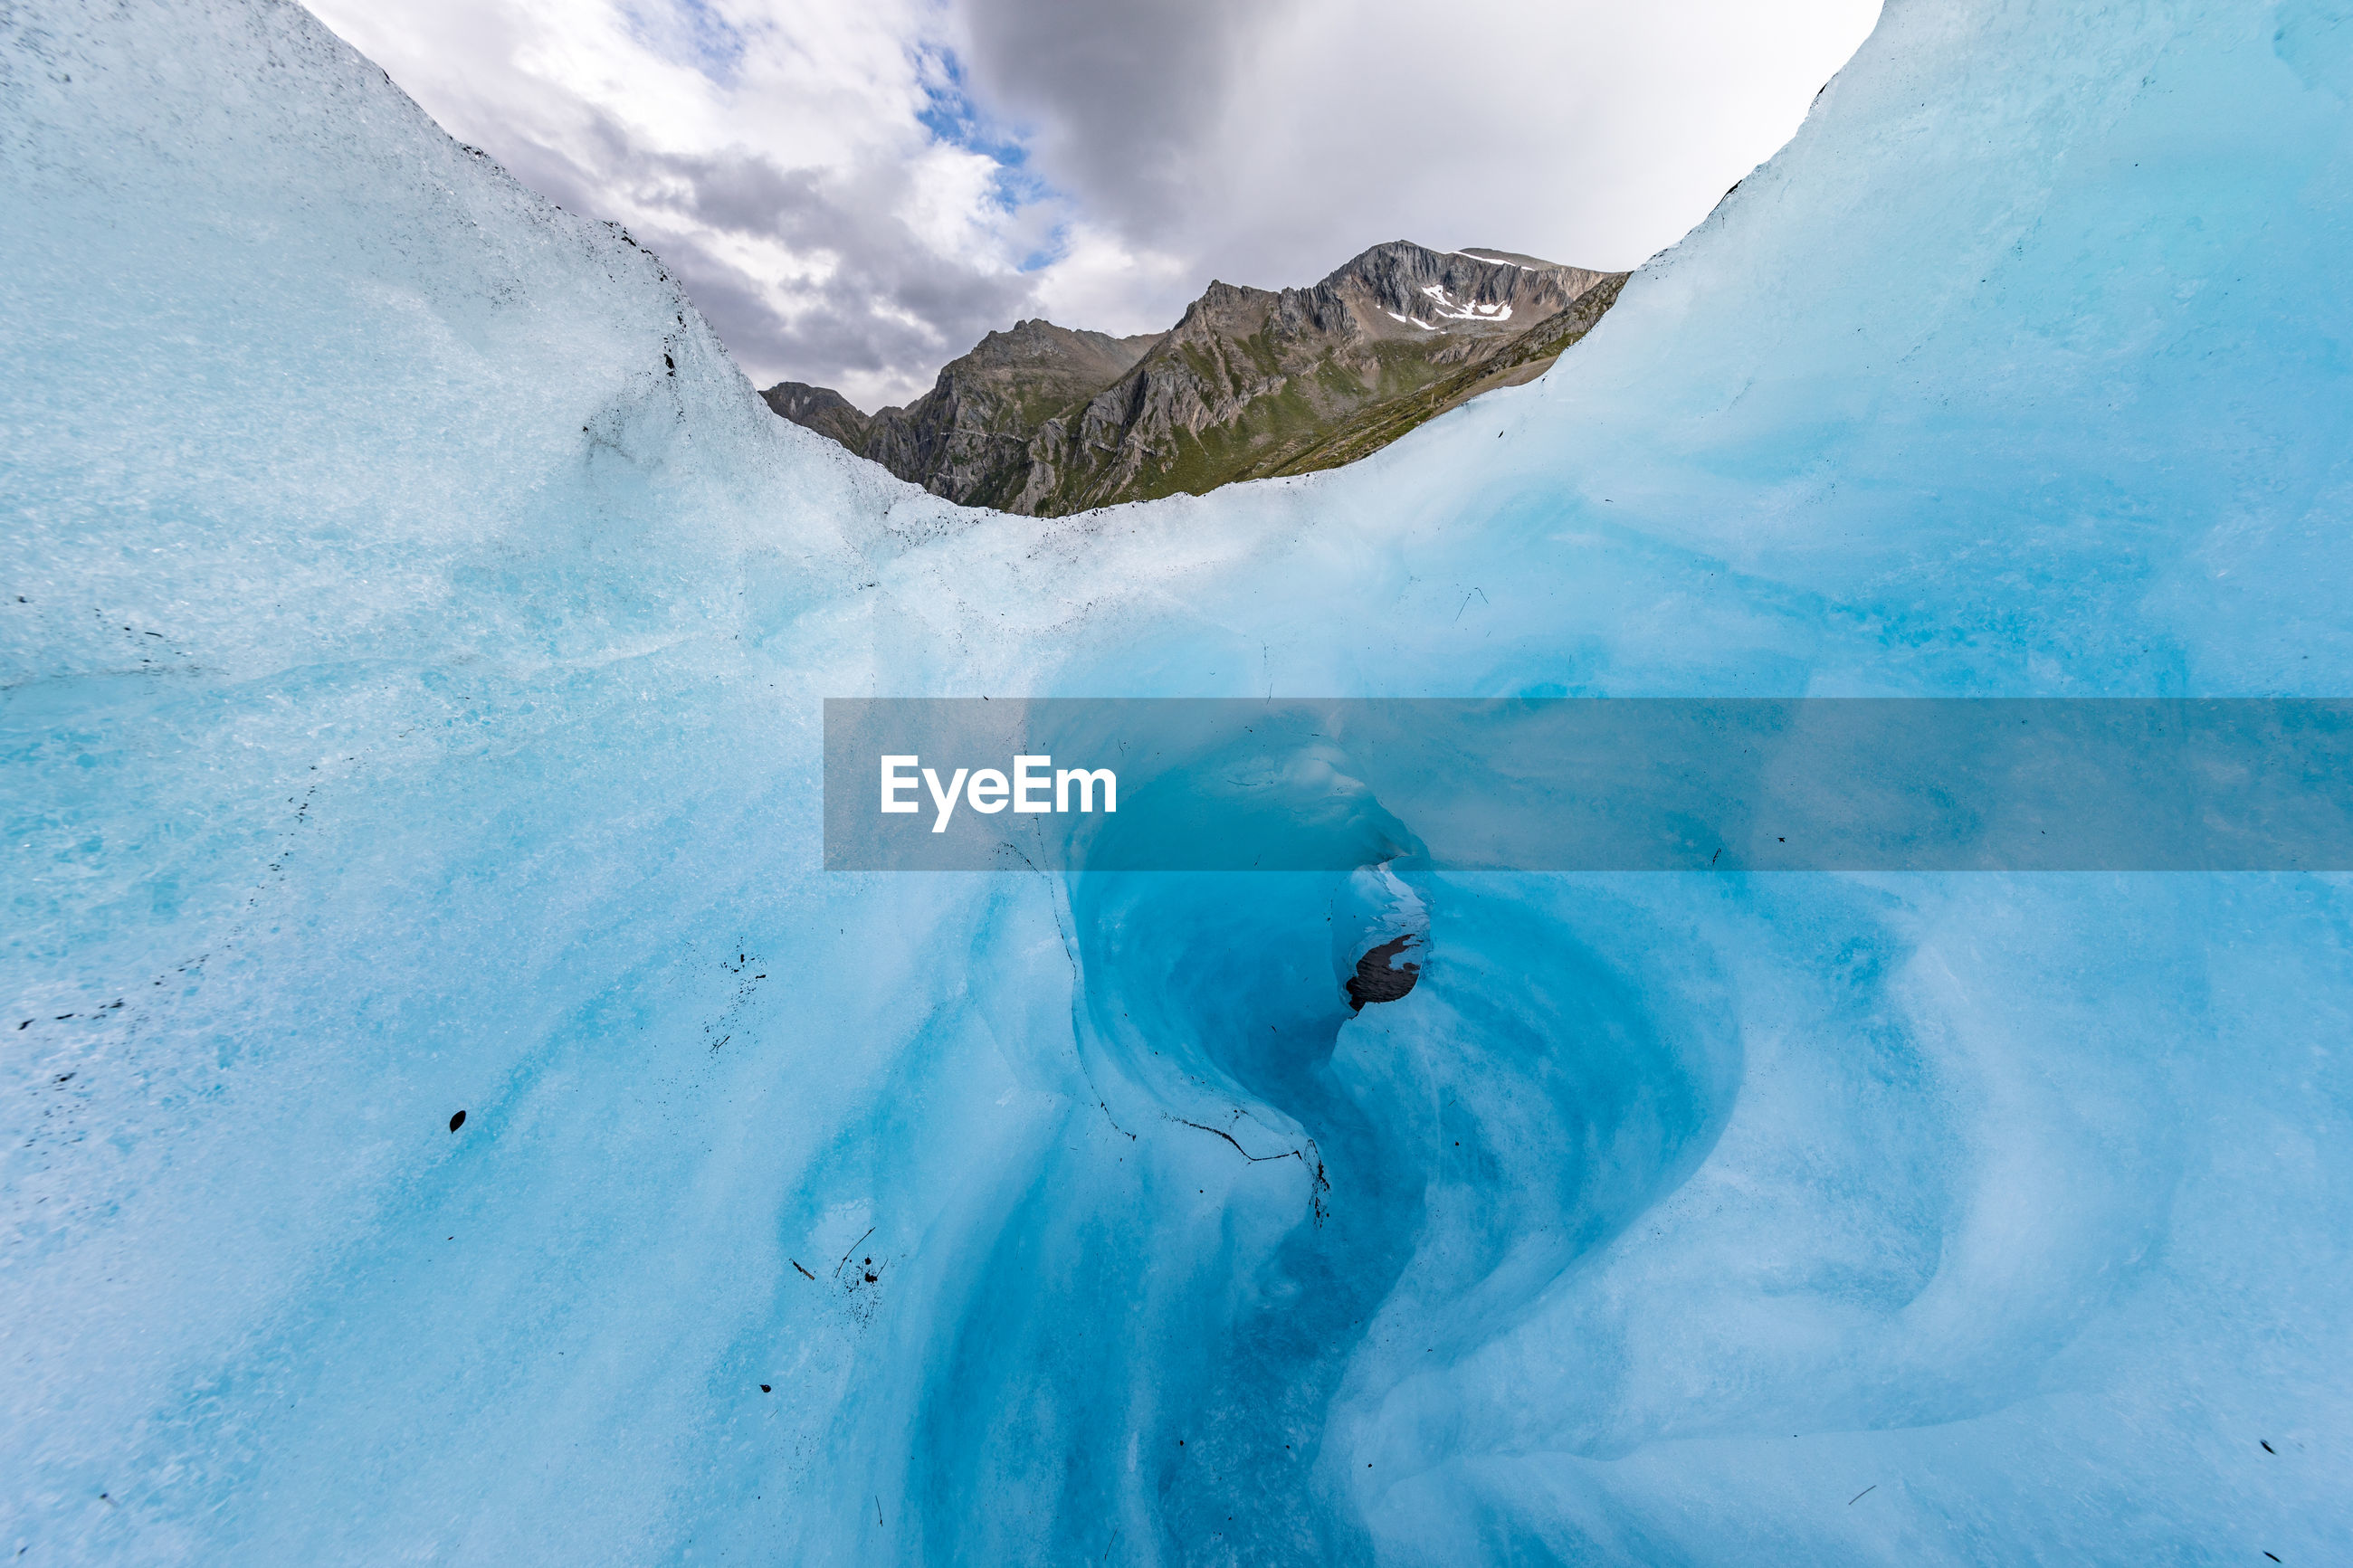 Low angle view of ice formation against cloudy sky